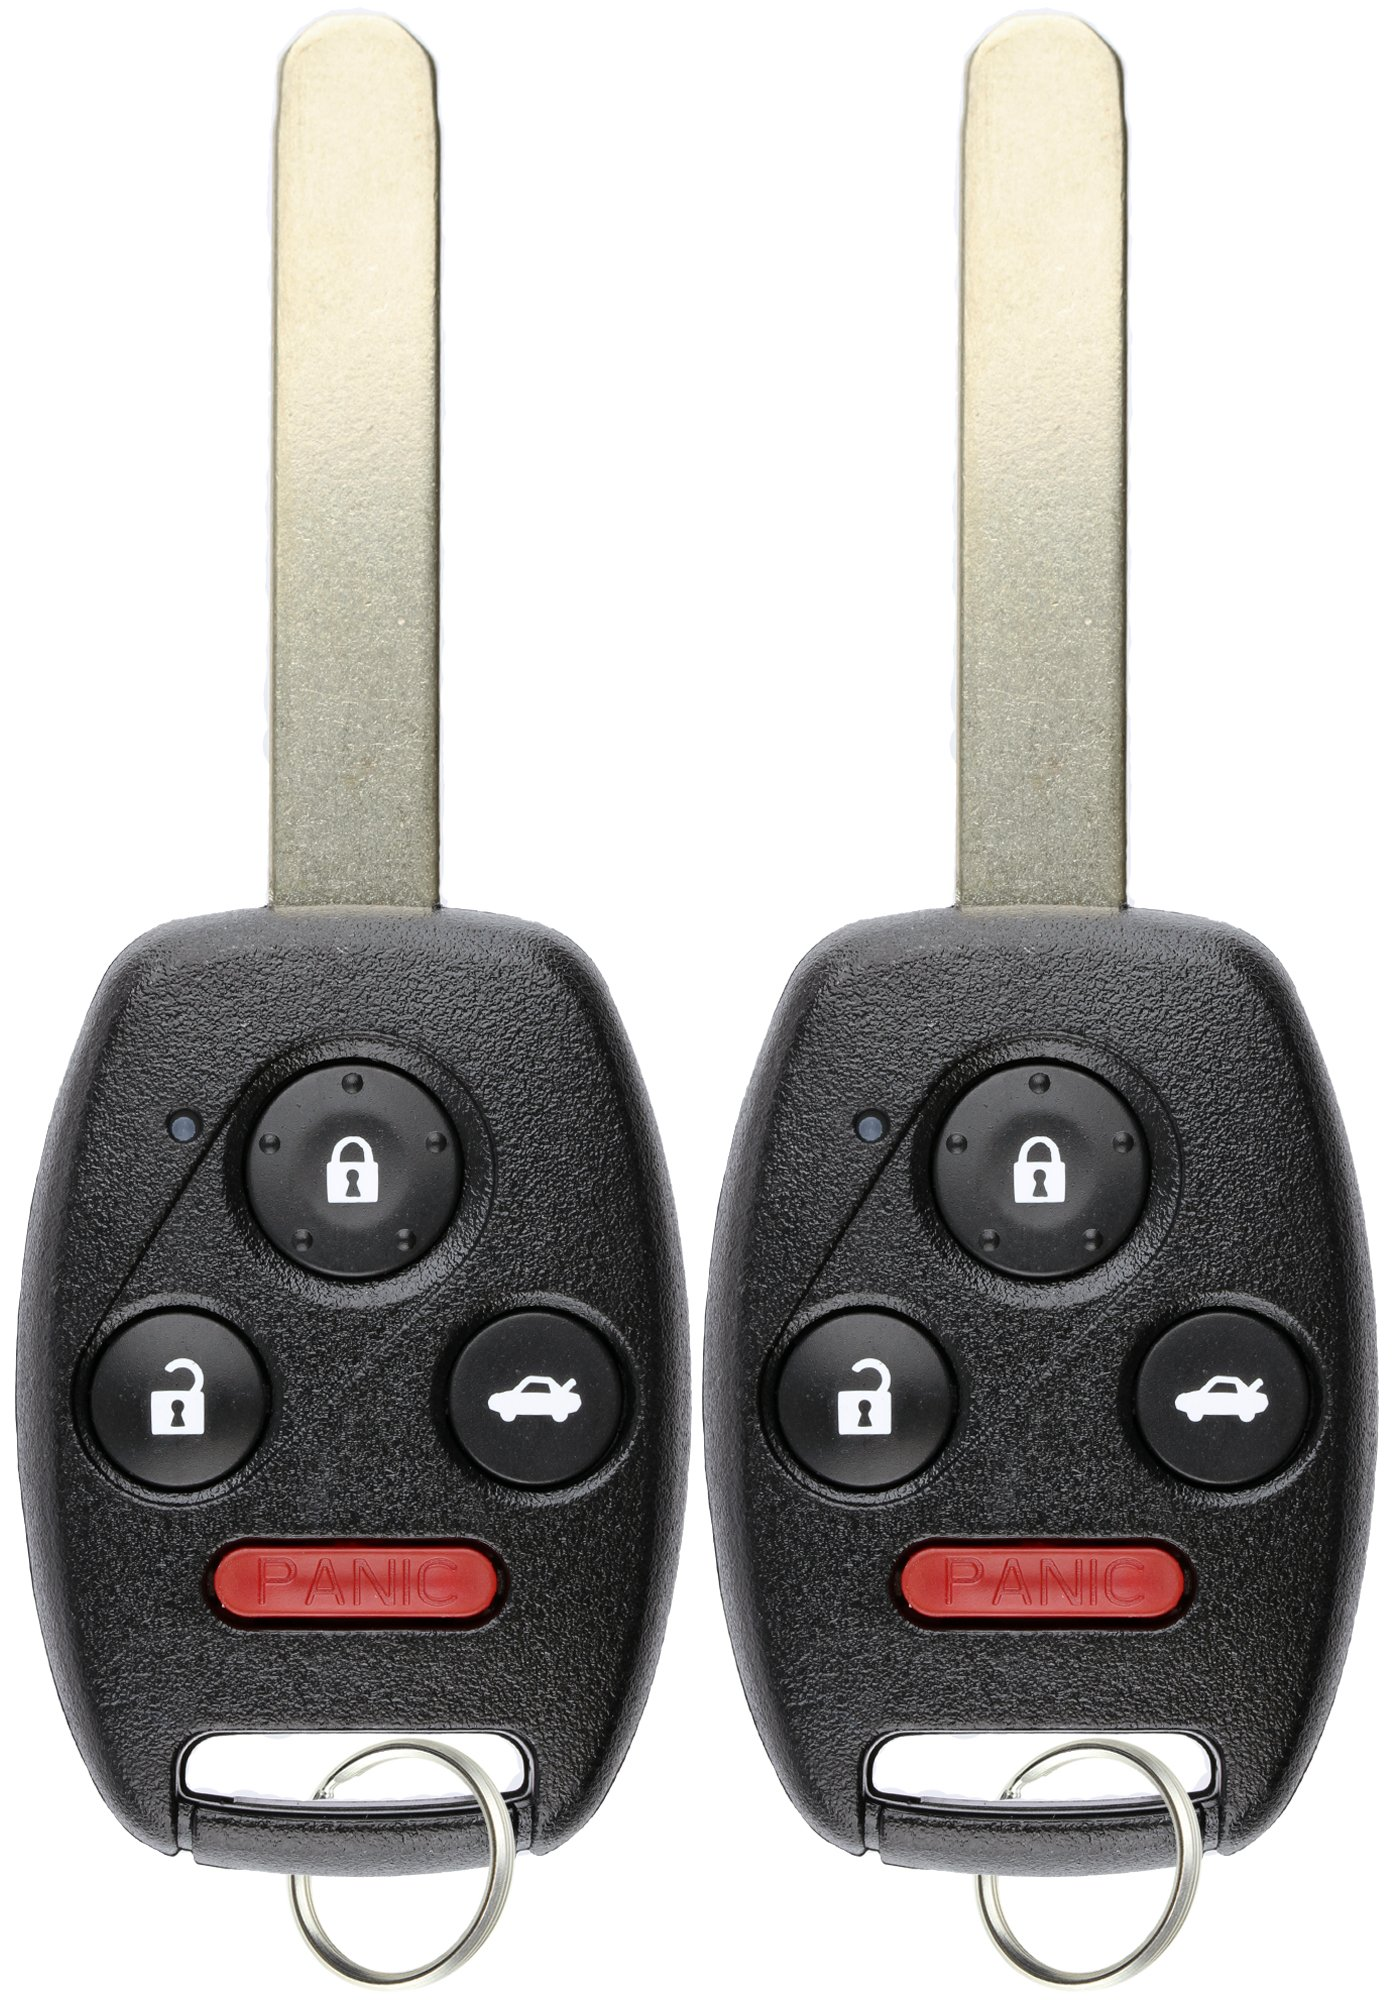 KeylessOption Keyless Entry Remote Control Uncut Car Ignition Key Fob Replacement for OUCG8D-380H-A (Pack of 2)